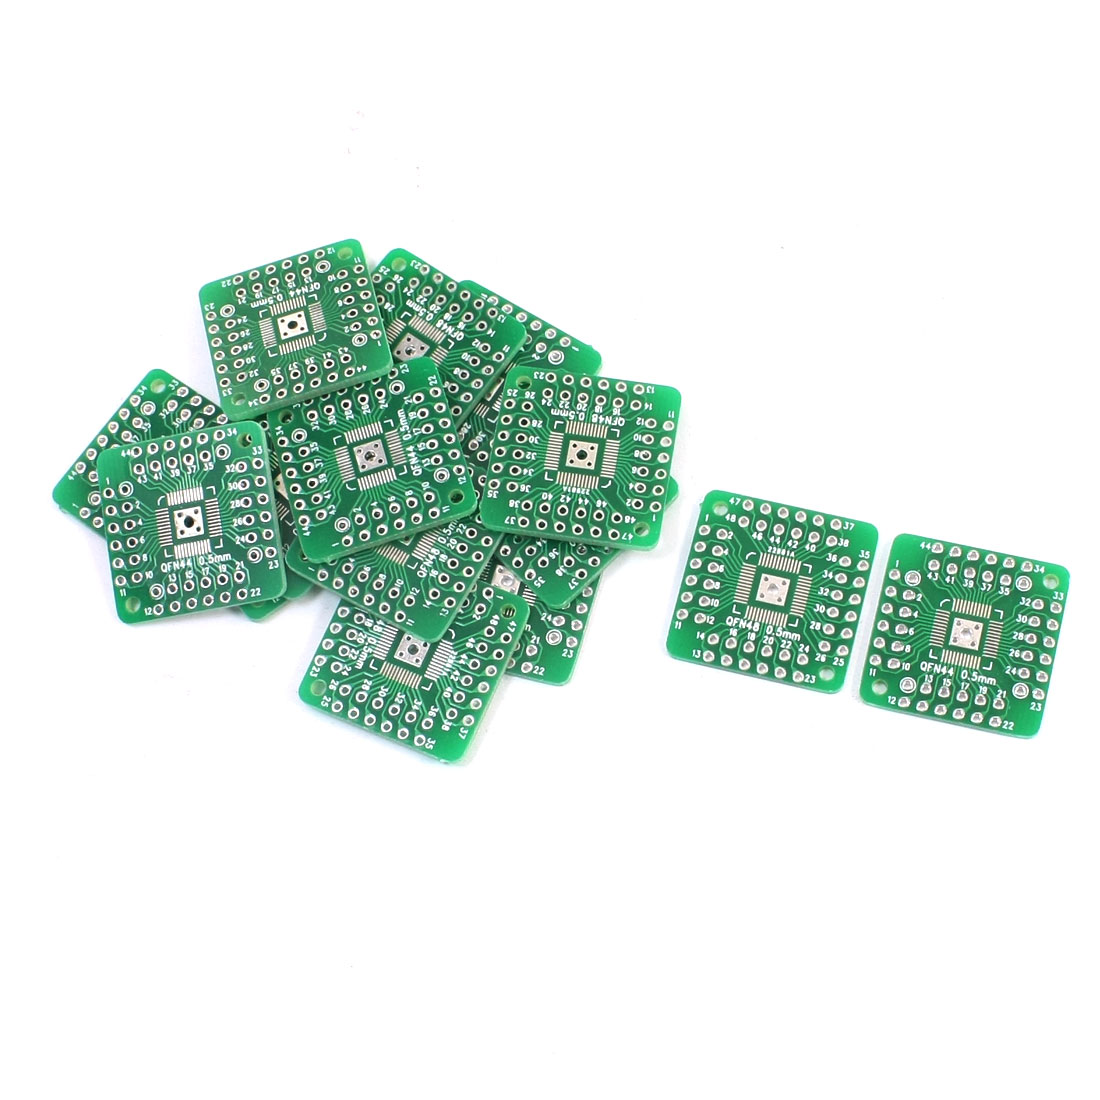 15Pcs Dual Sides SMD SMT QFN48 QFN44 0.5mm to DIP 48/44 2.54mm IC PCB Adapter Plate Convertor Board